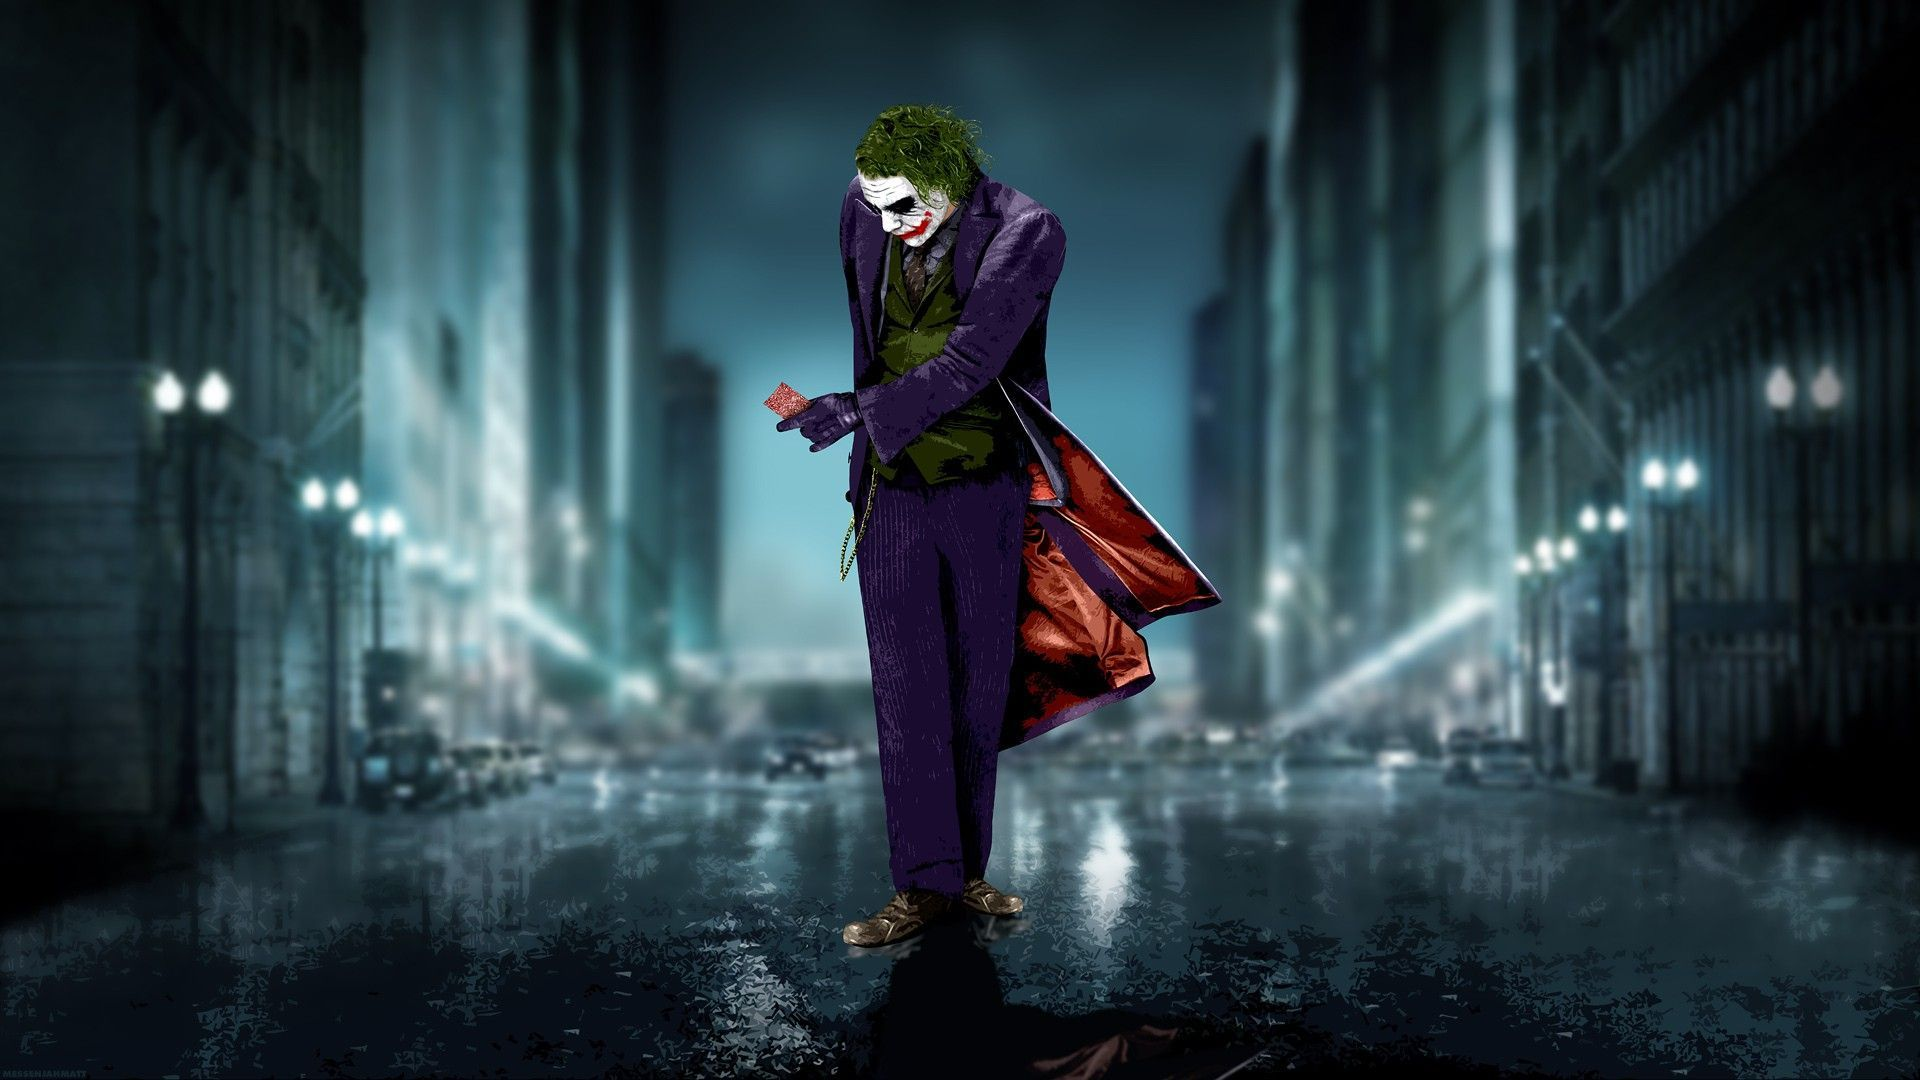 Joker HD Wallpapers  Wallpaper  1920x1080